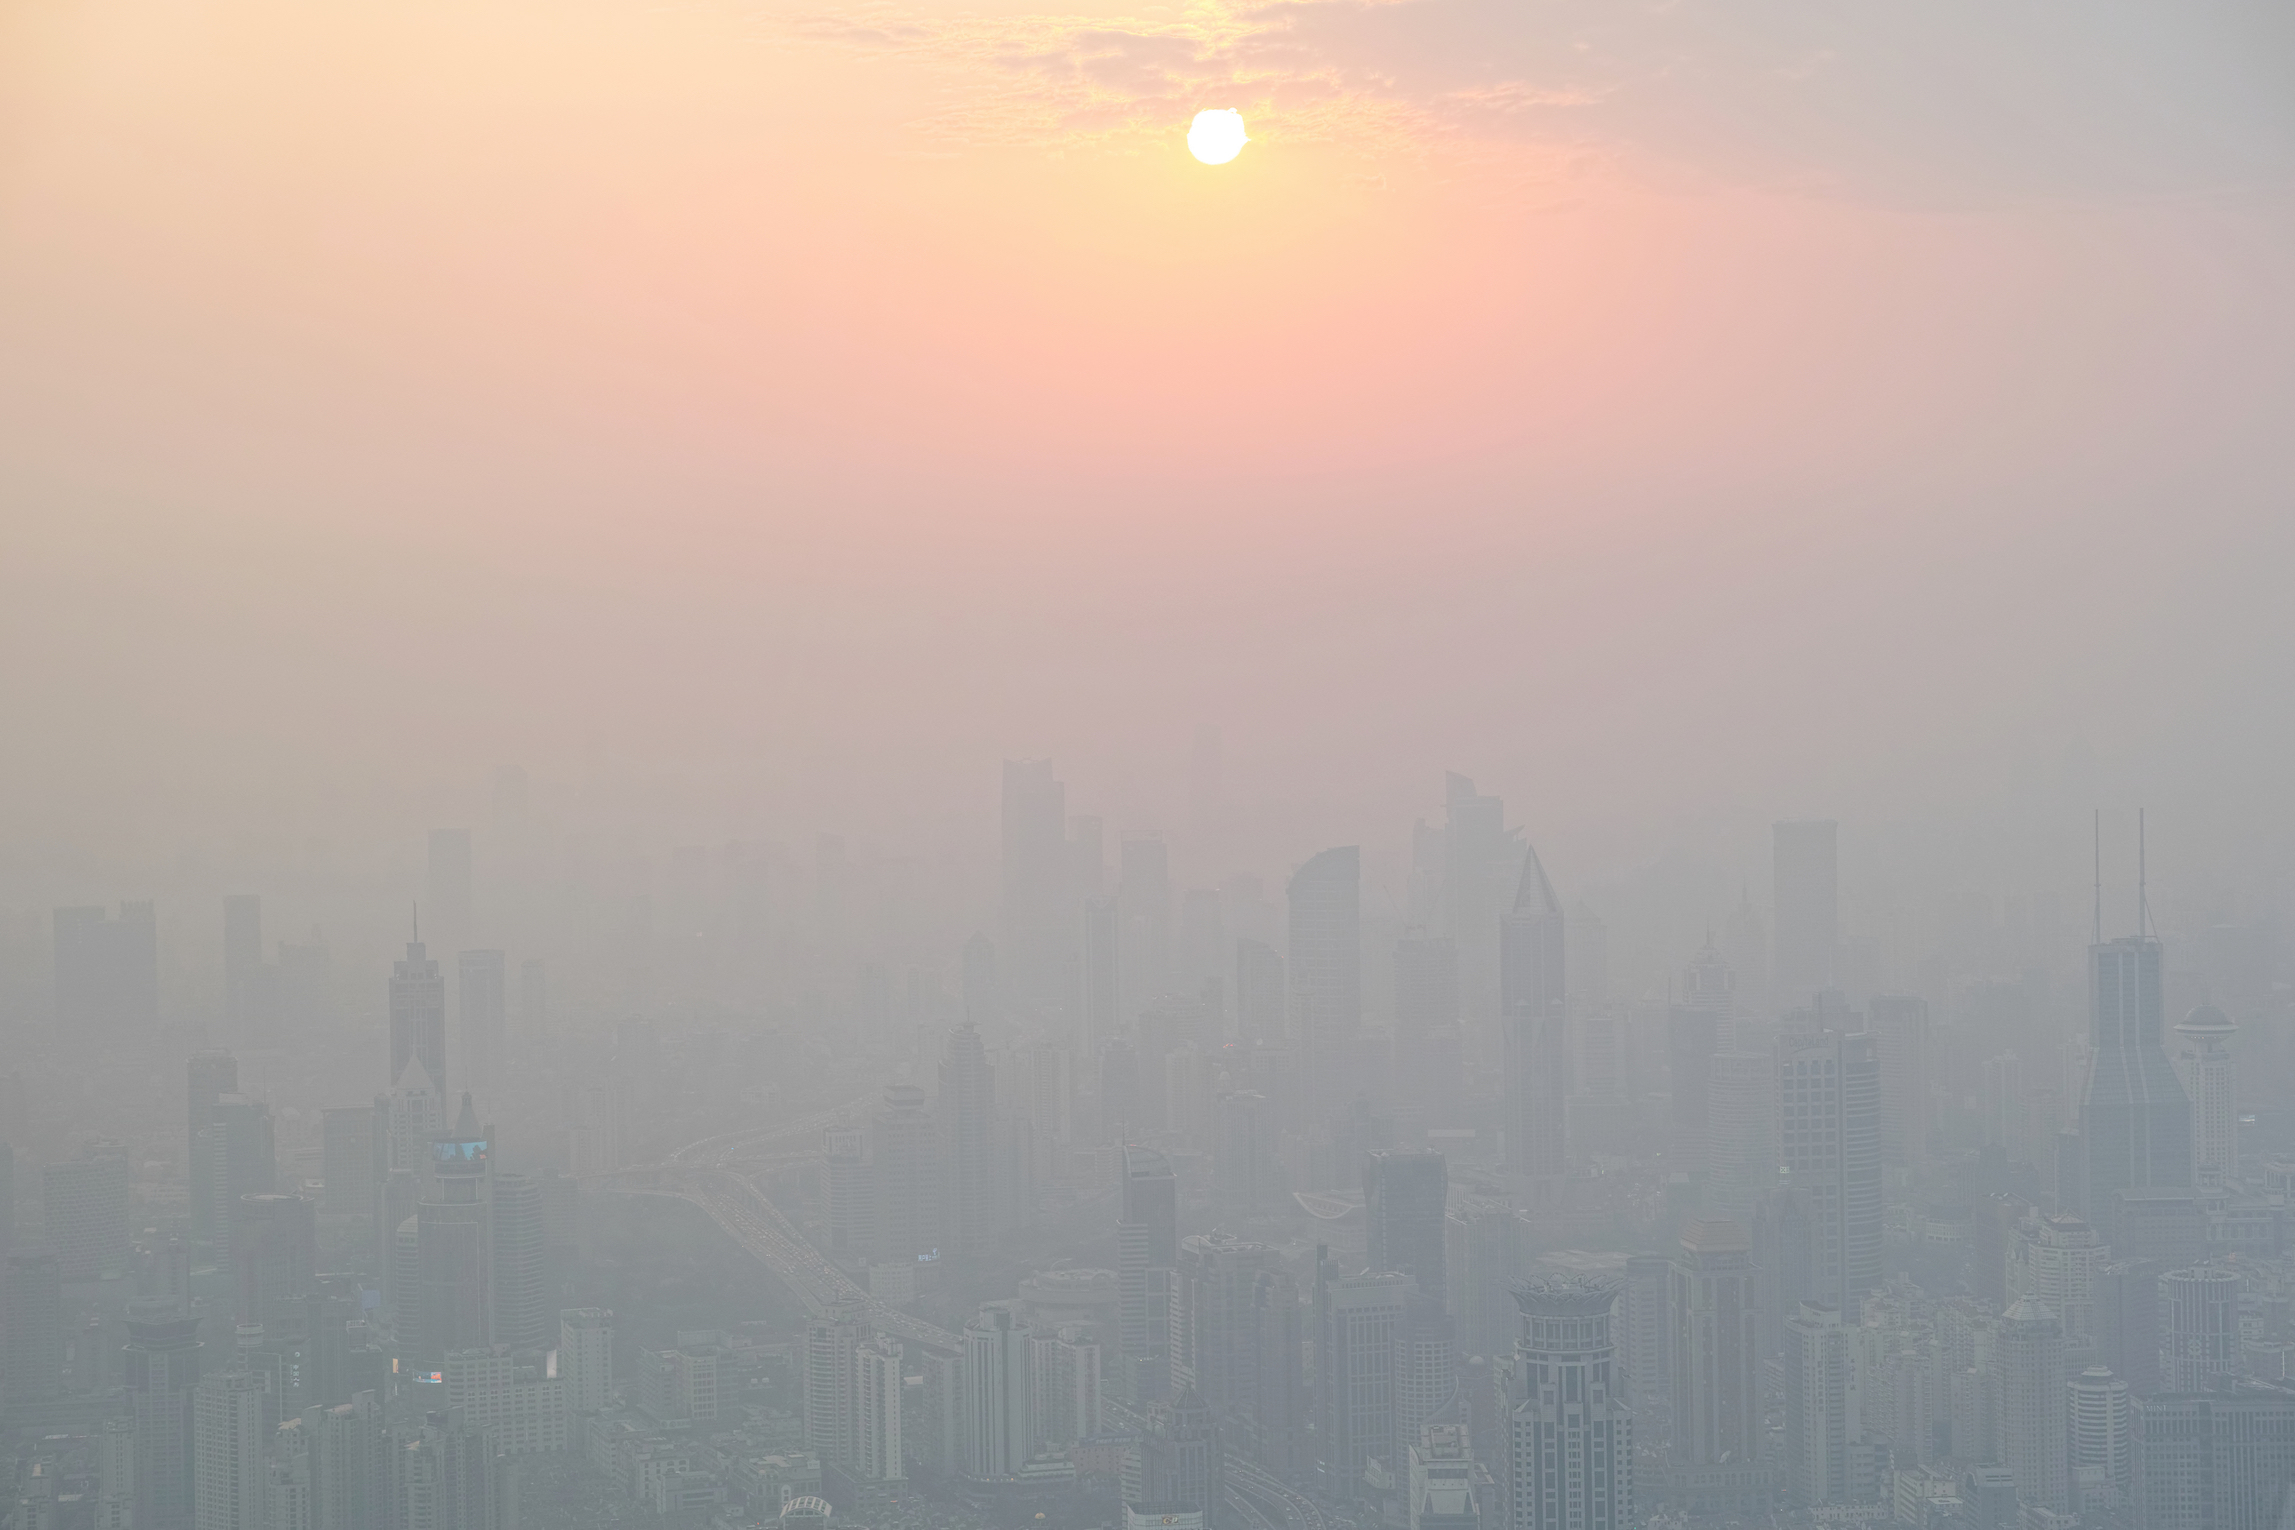 A leading climate change expert has outlined five specific ways to effectively address severe air pollution in China.